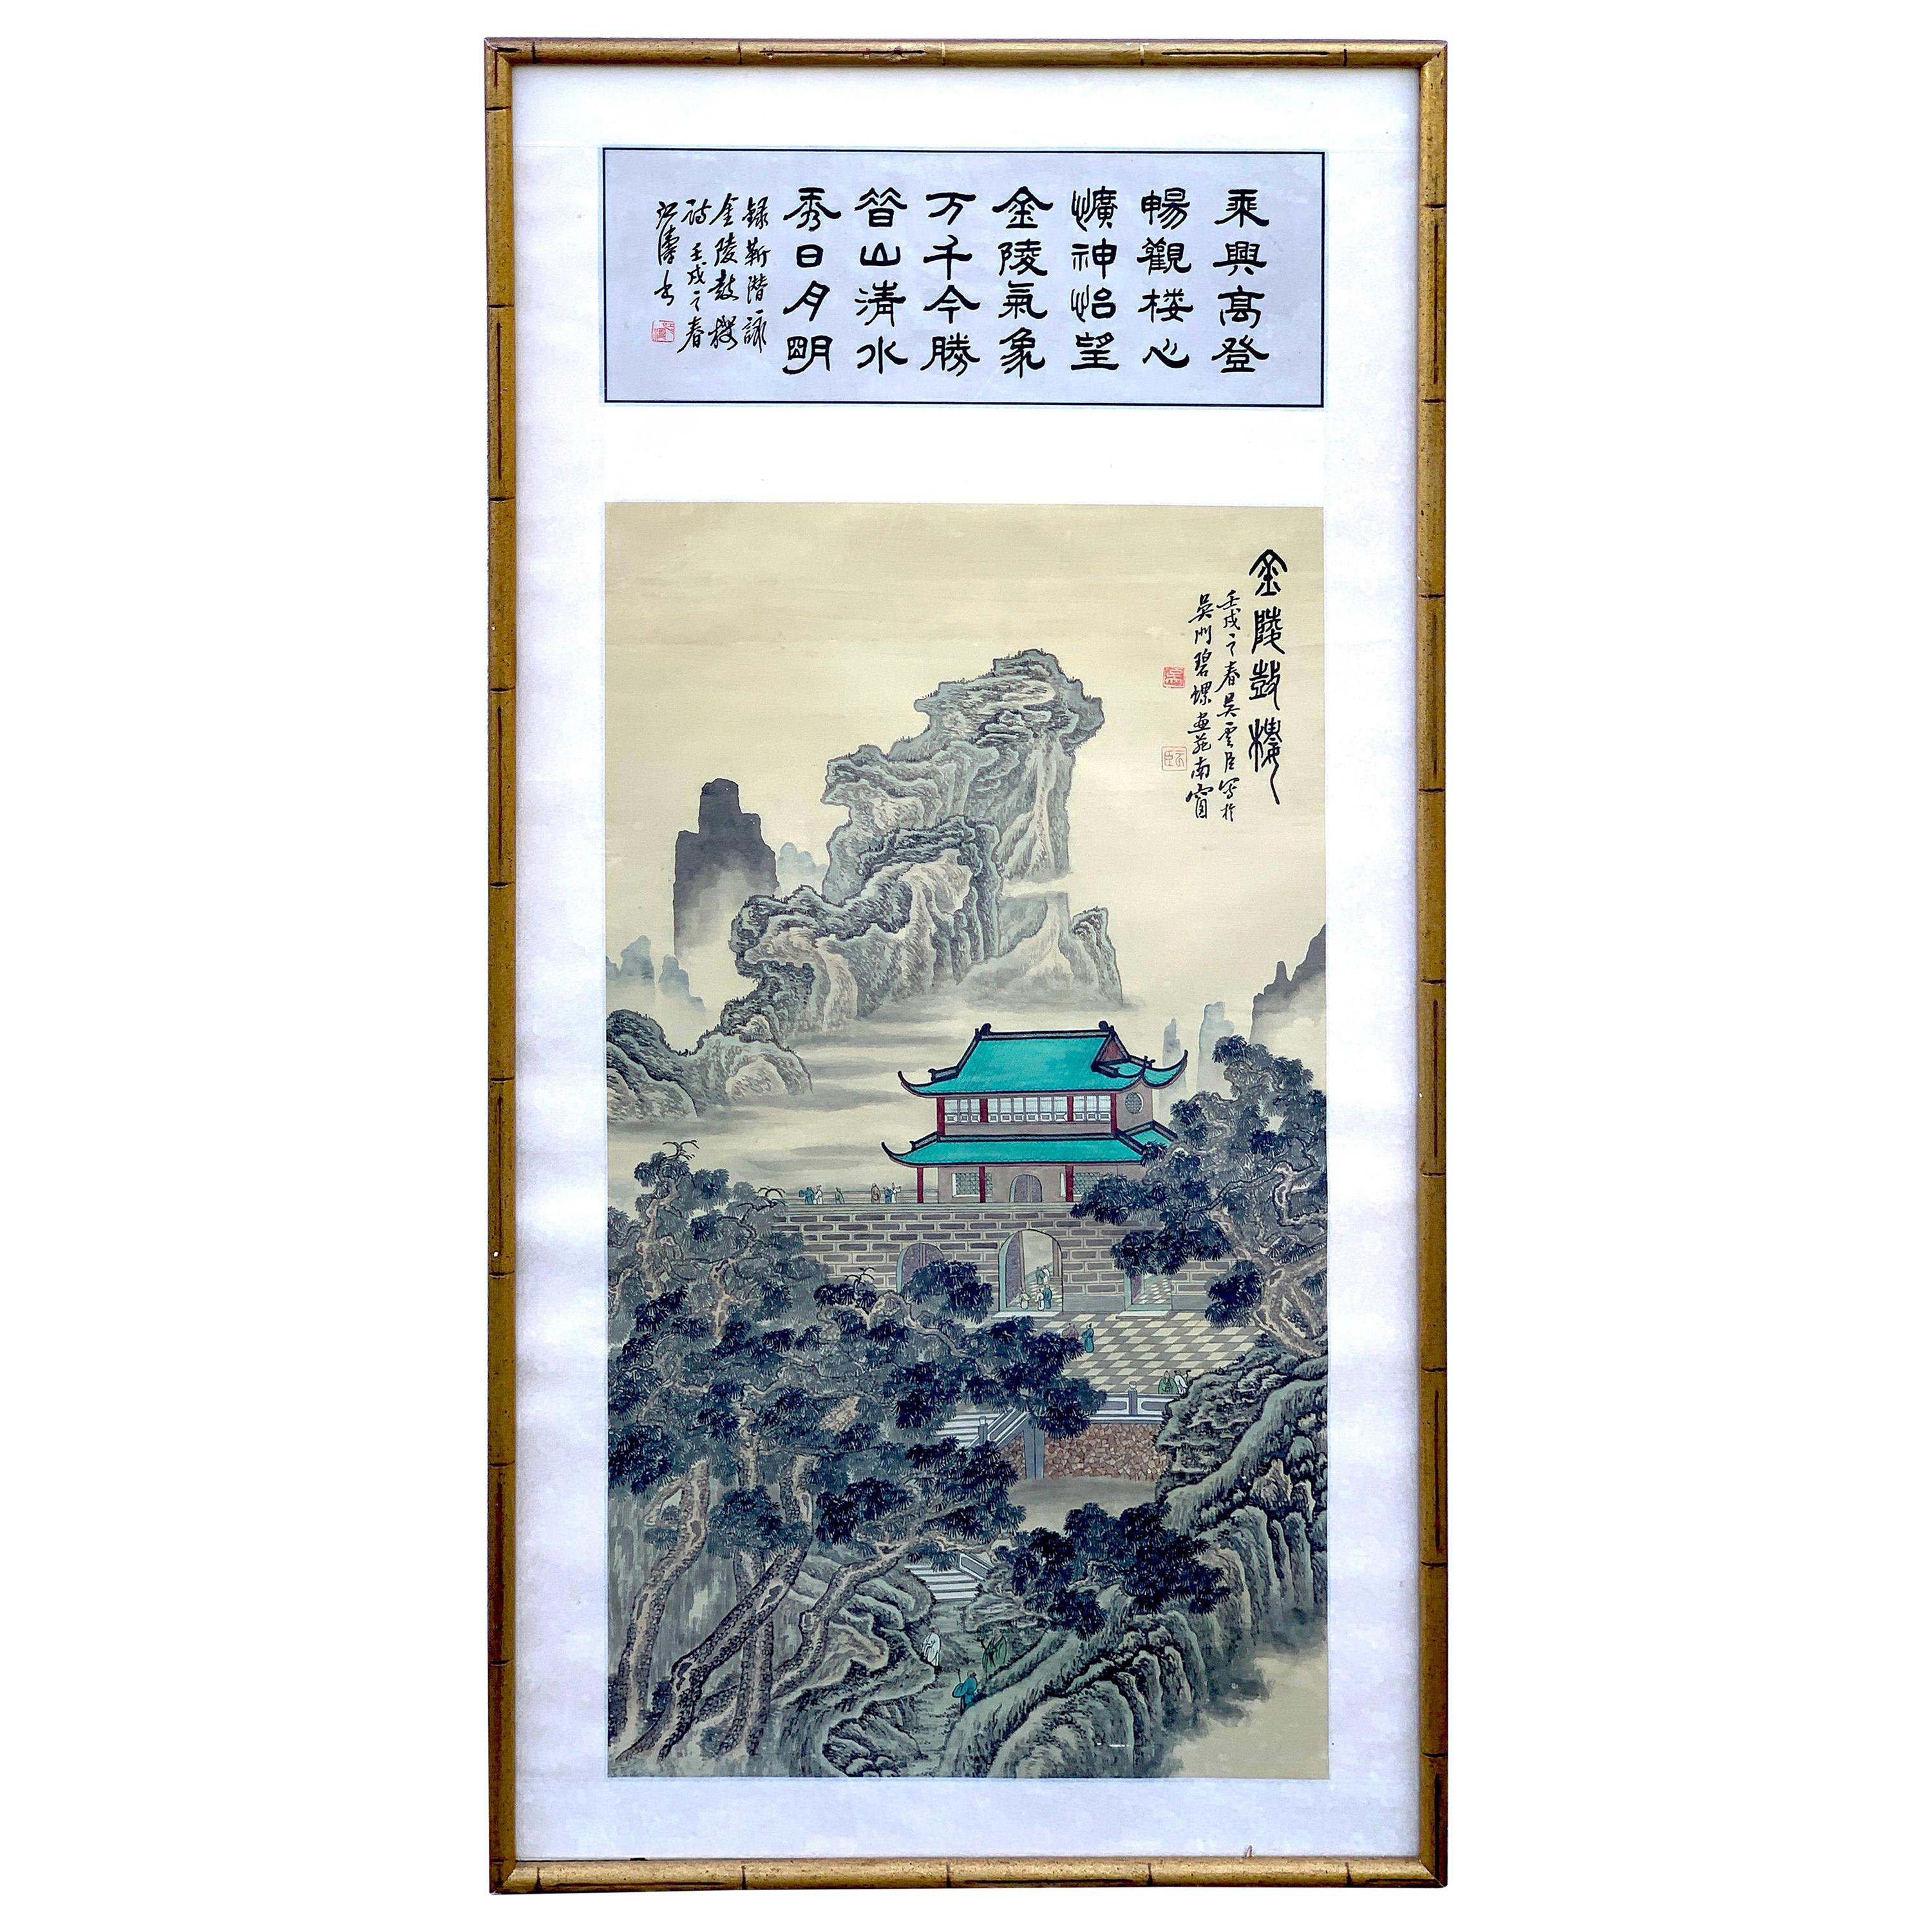 Midcentury Chinese Landscape Scroll Painting